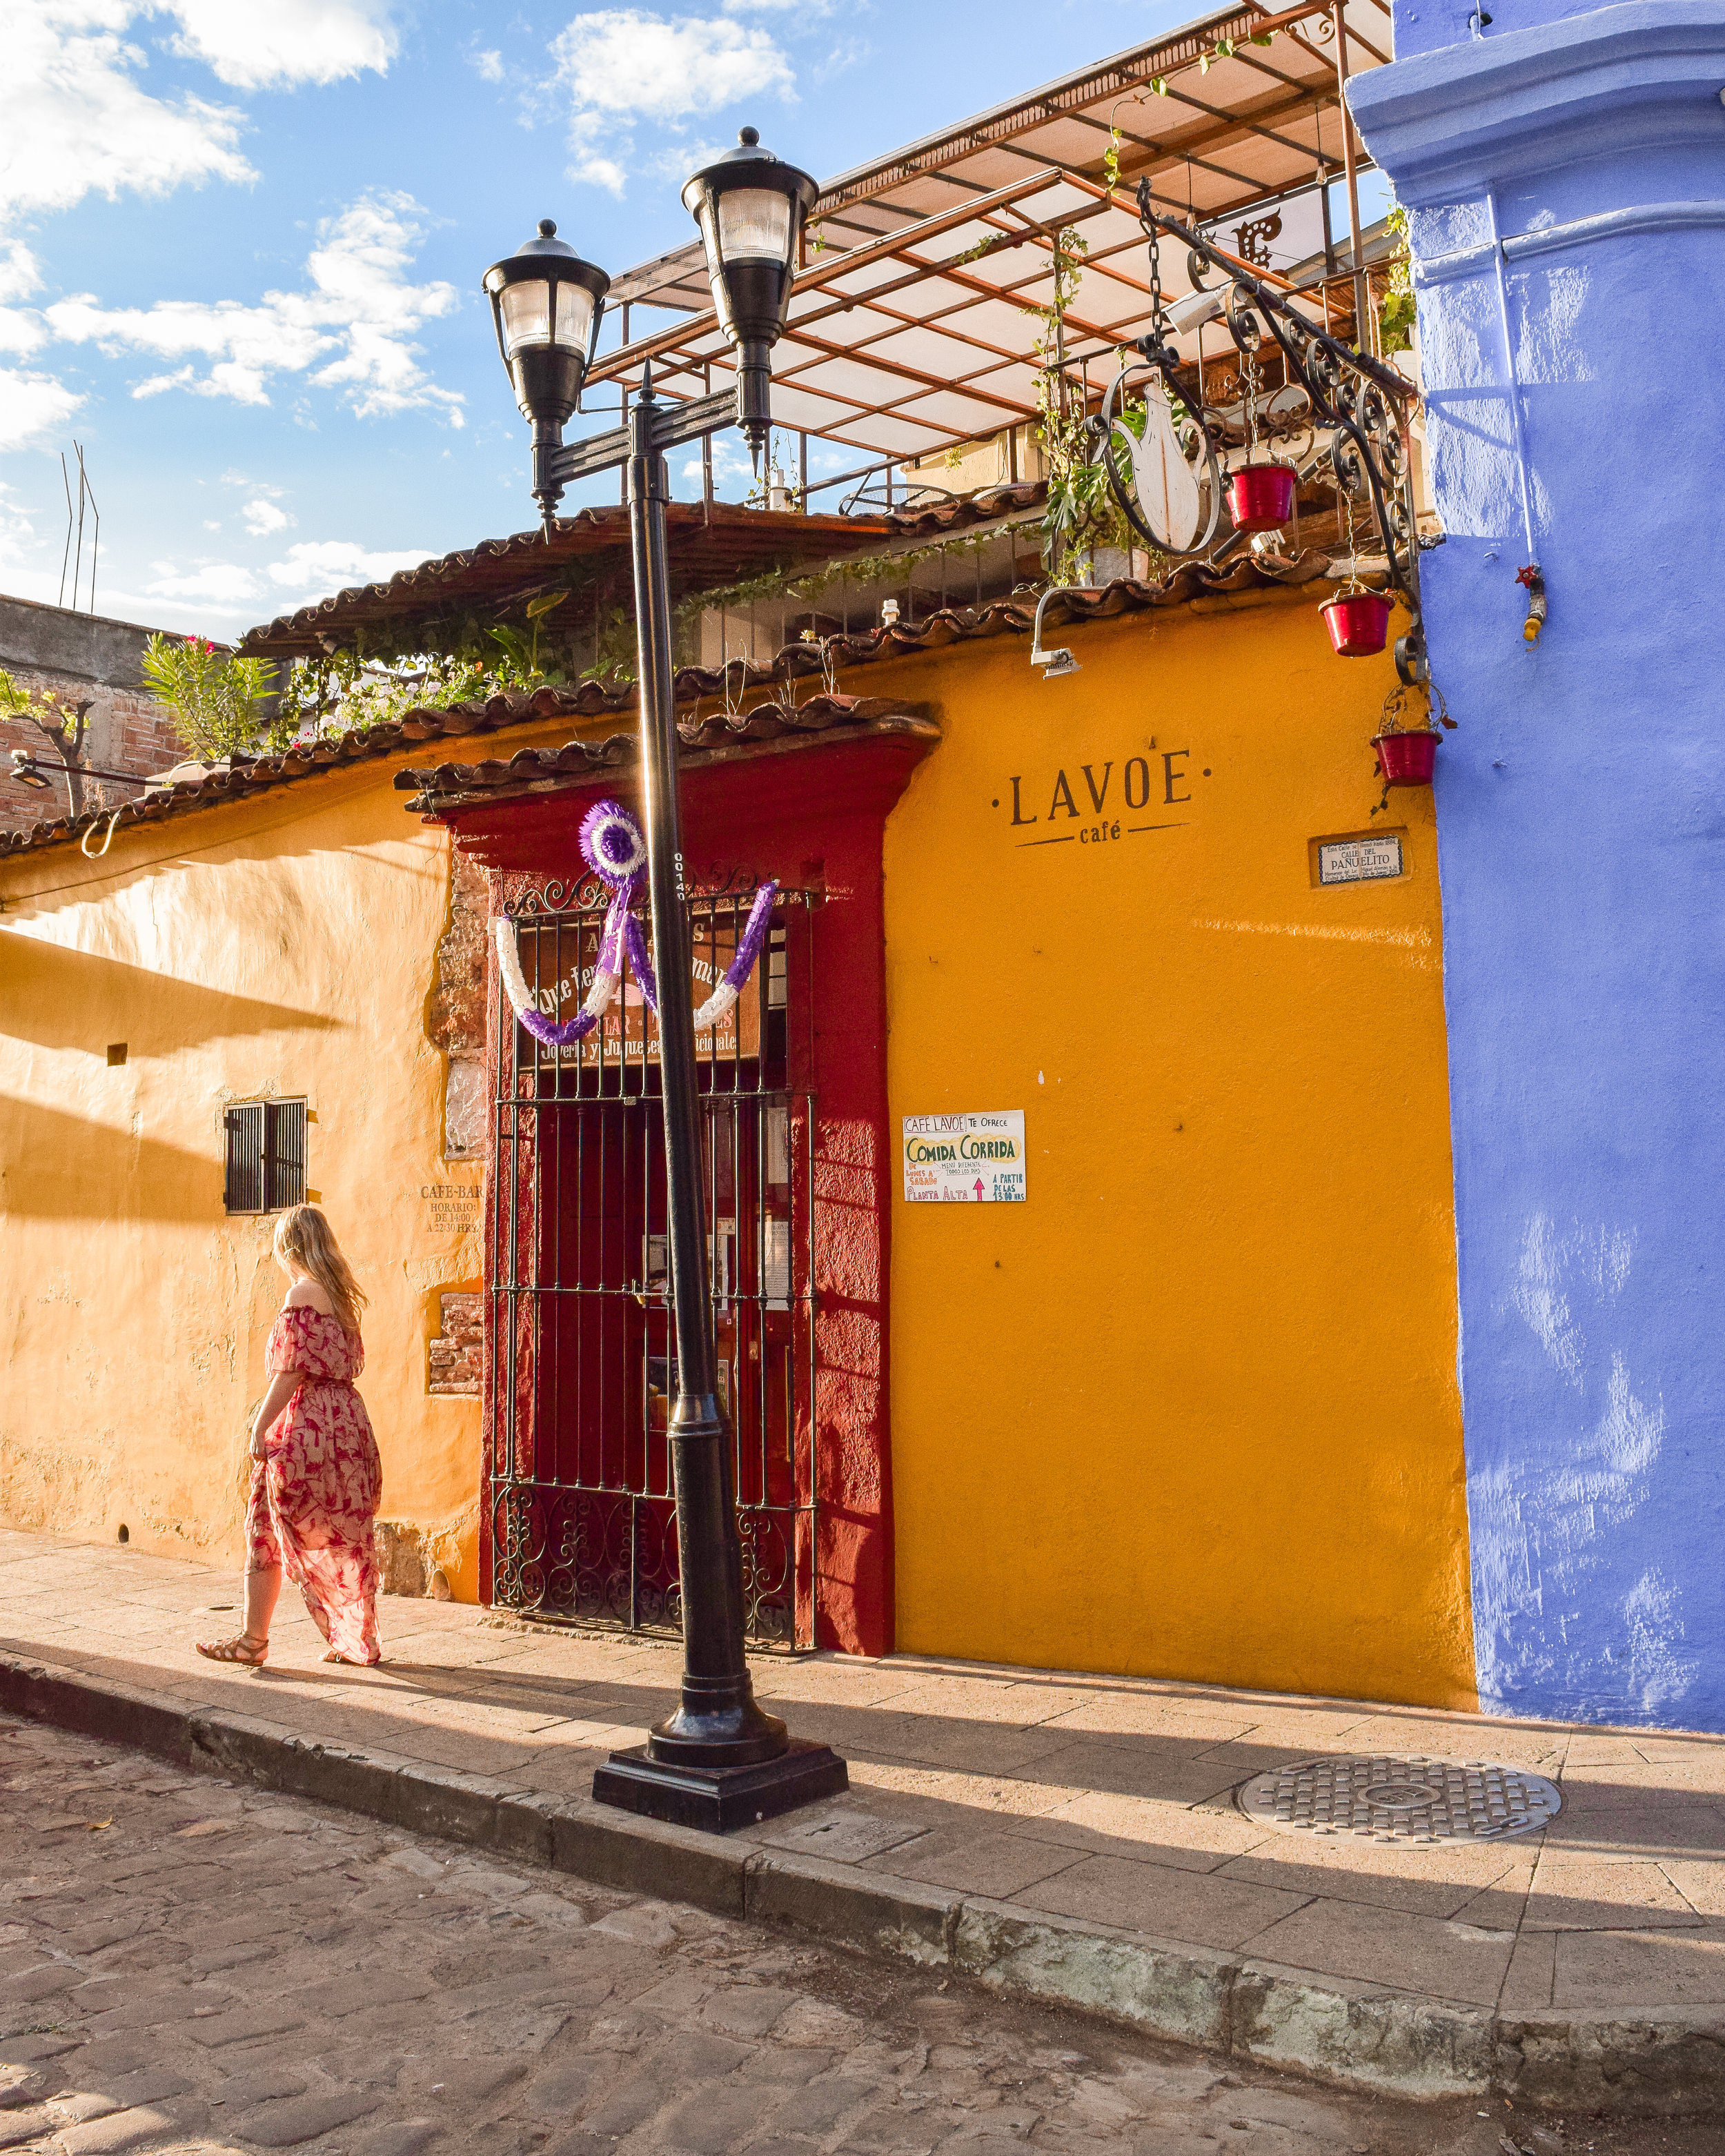 When you walk the streets of Oaxaca City, you will see some of the most saturated colors merging together like a rainbow was splashed across the streets.